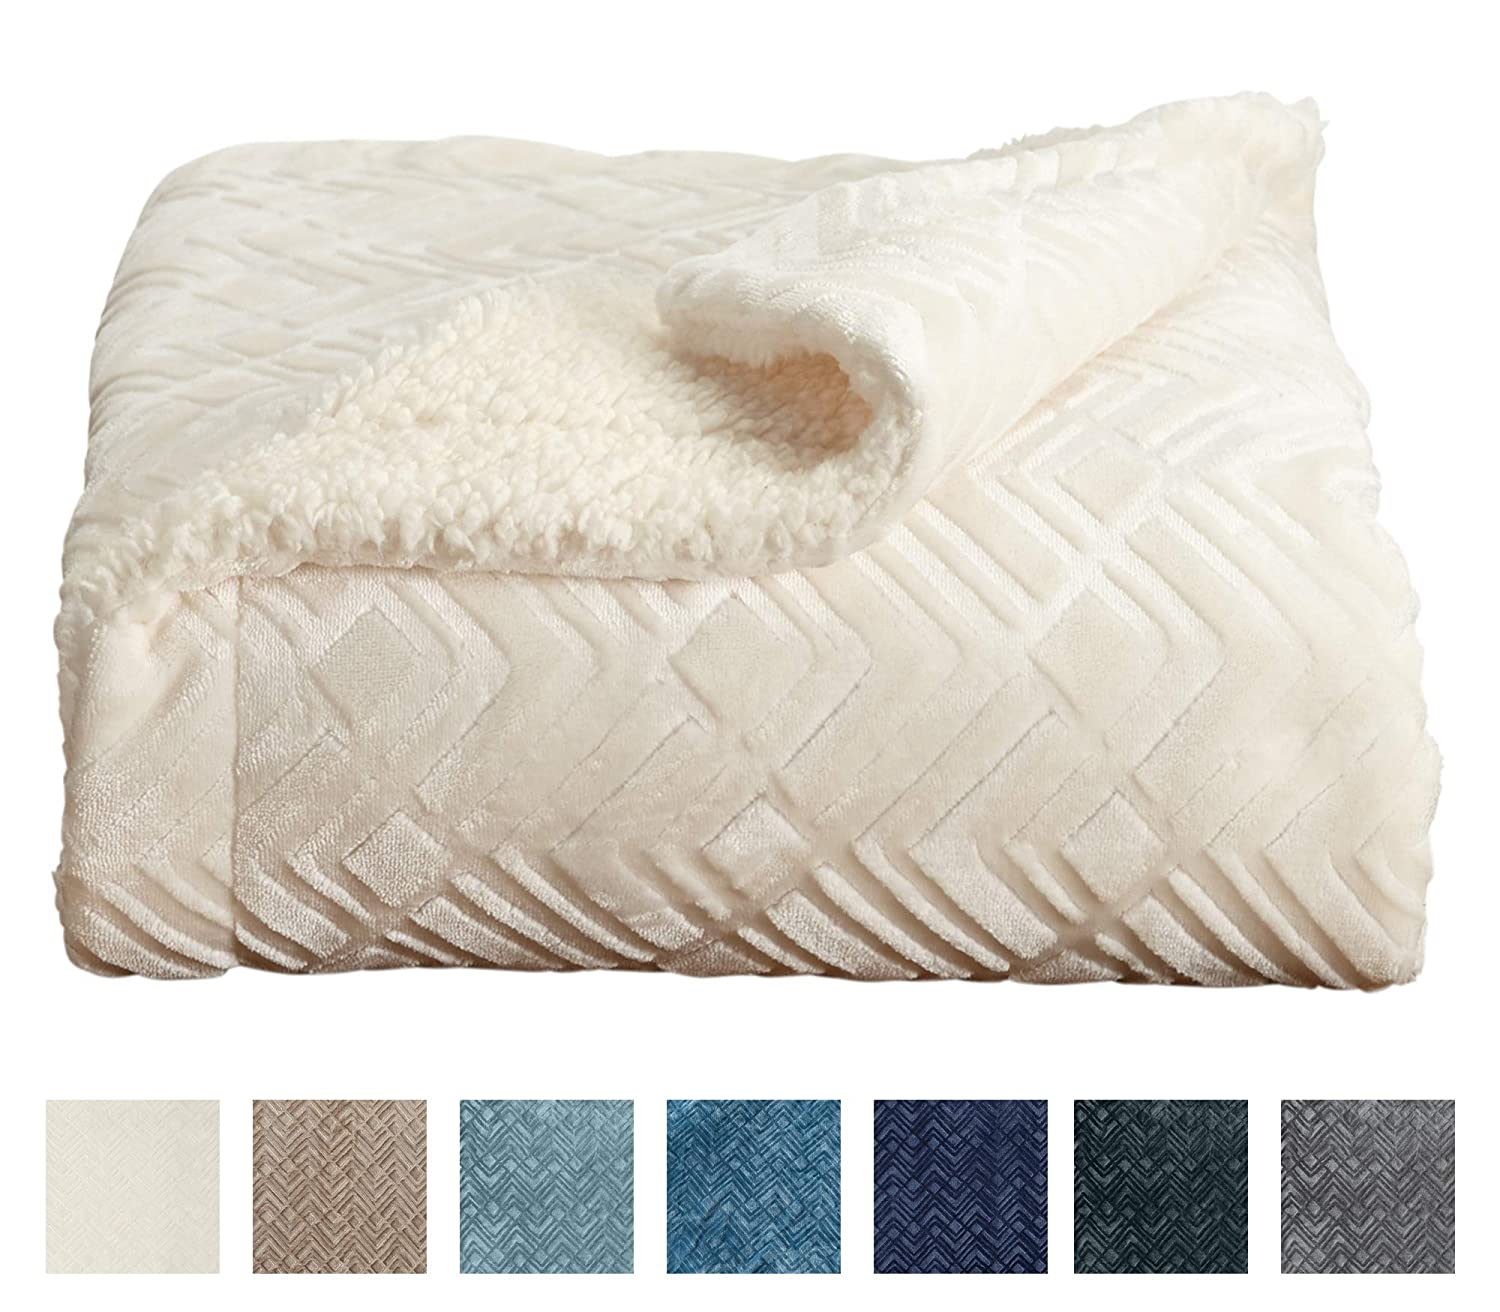 Premium Reversible Two In One Berber And Sculpted Velvet Plush Luxury Blanket Cozy Lightweight All Season Throw Blanket By Home Fashion Designs Brand White By Home Fashion Designs Amazon In Home Kitchen